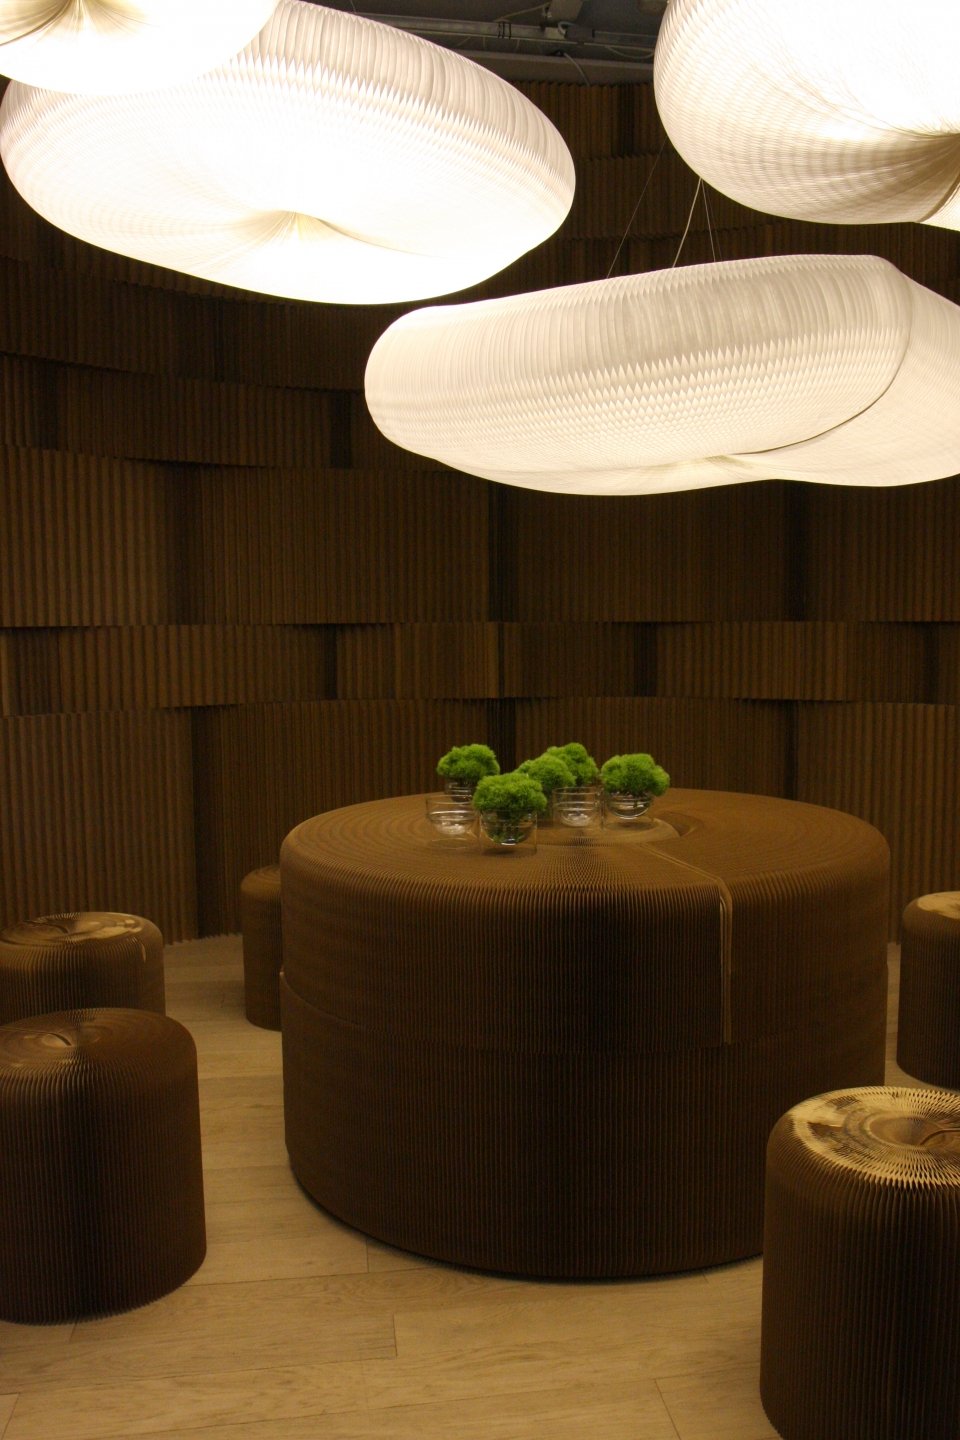 portable paper stools and furniture by molo - The natural, calming affect of a room built from paper softblocks.